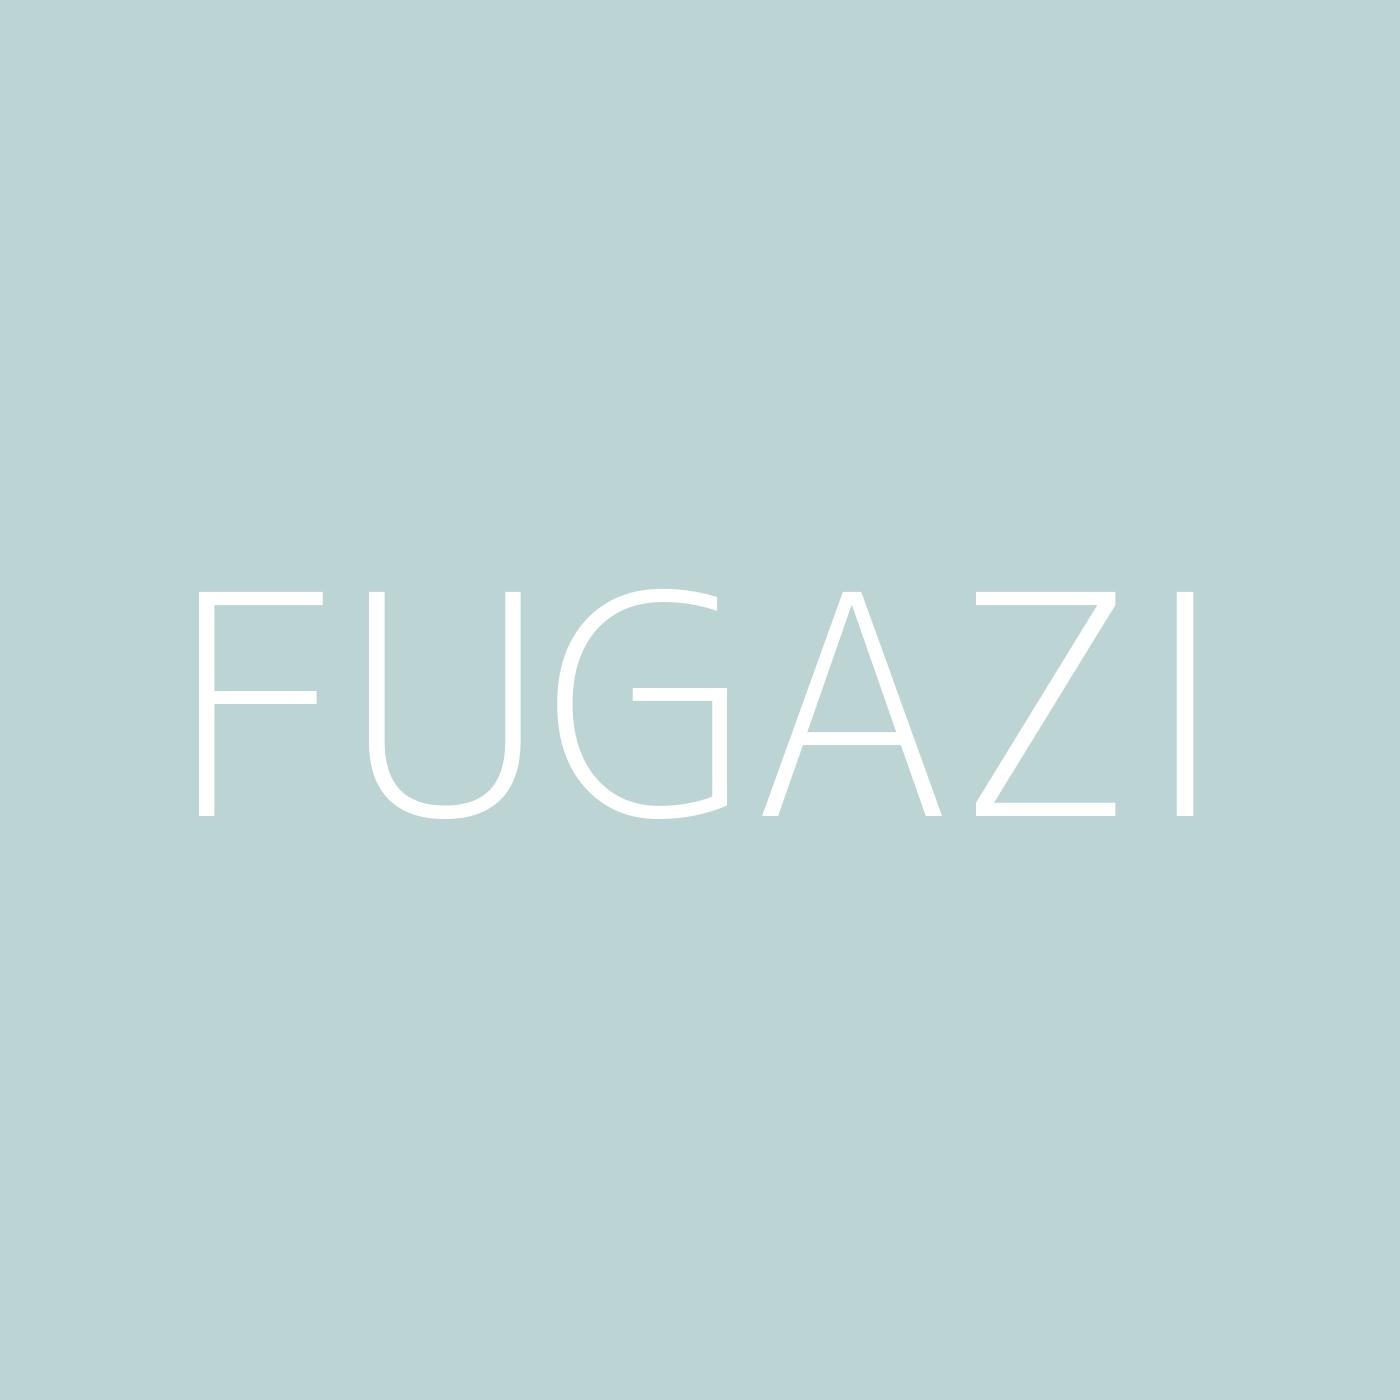 Fugazi Playlist Artwork